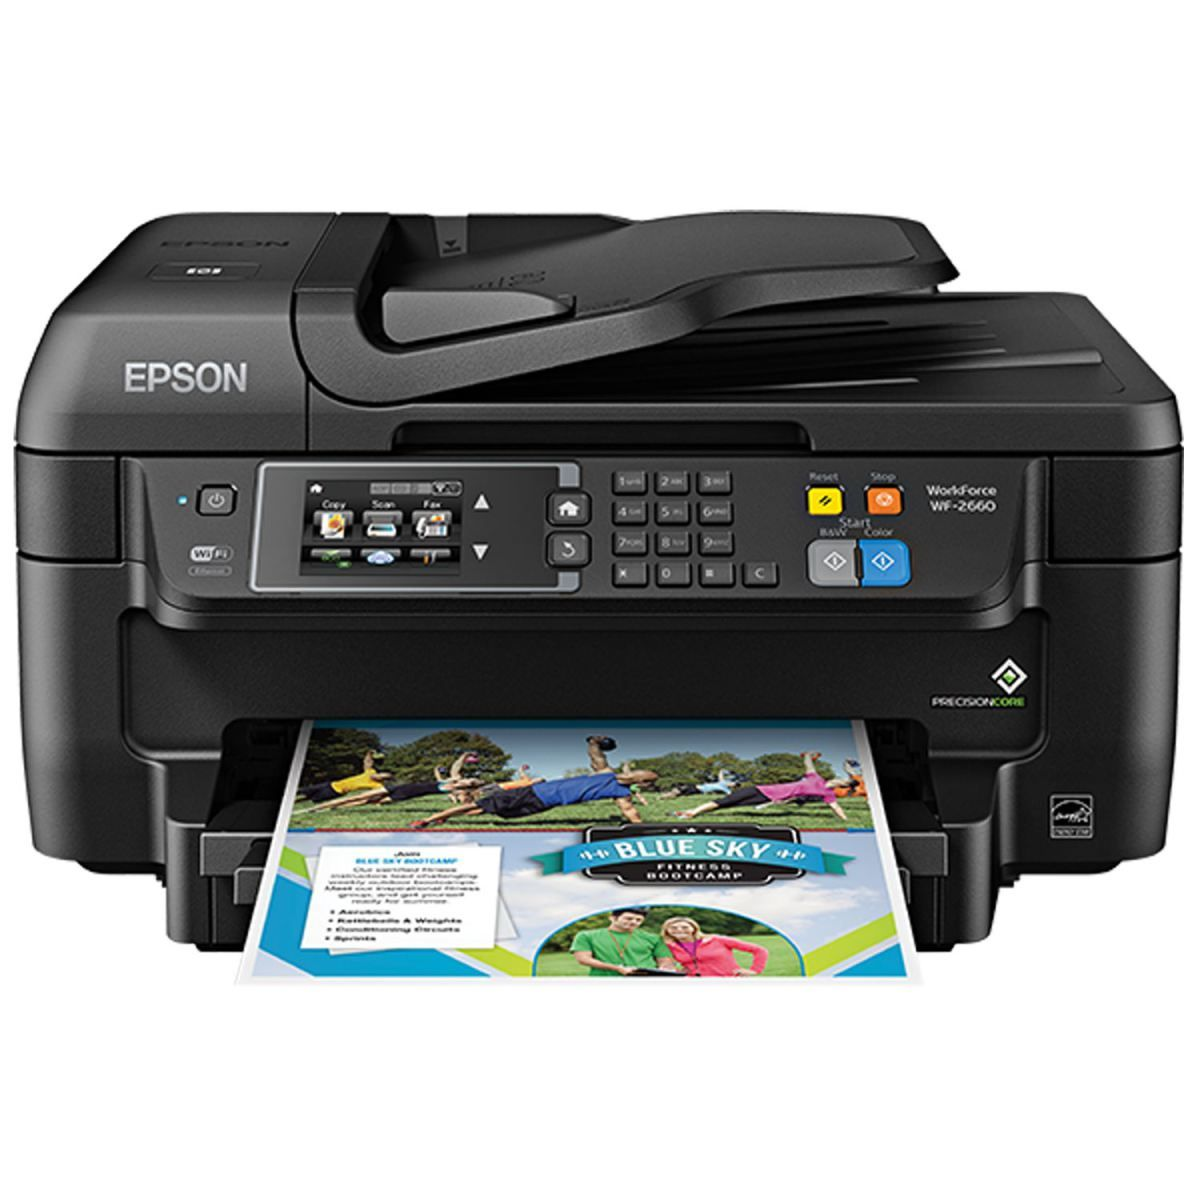 8c833205a7485c124e5d19d5b71ad4c8 - How Do I Get My Epson Printer To Scan To My Computer